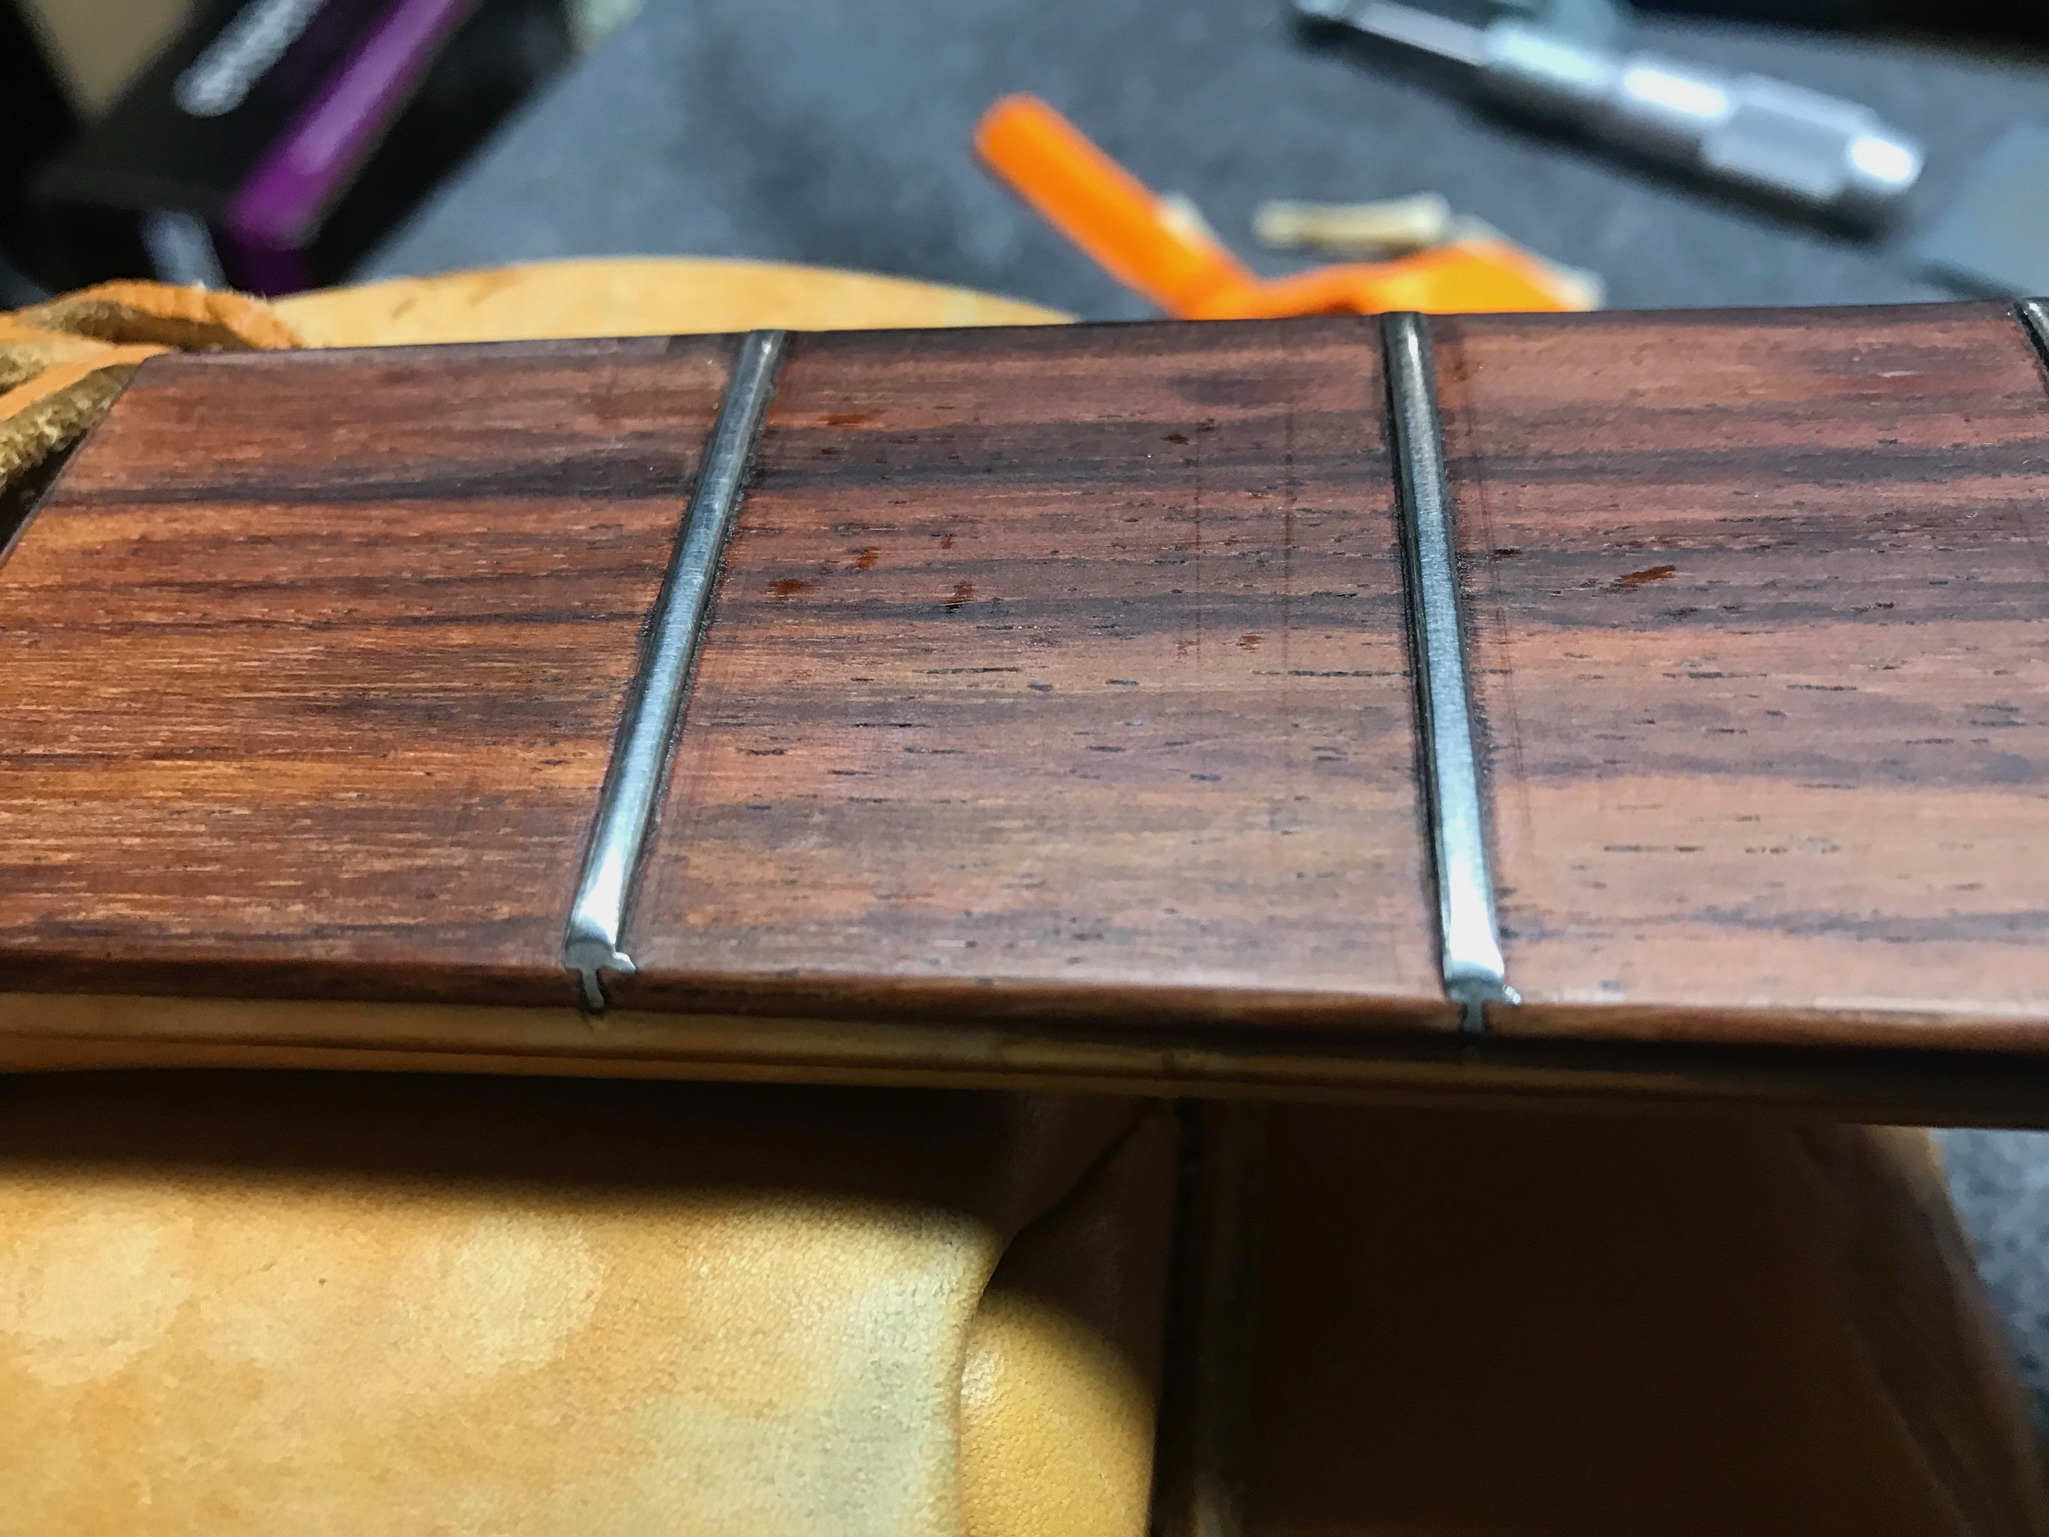 AFTER but note the burr on the fret on the left, left side bottom of image. Used polished side file to de-burr and then polished to match the rest of fret